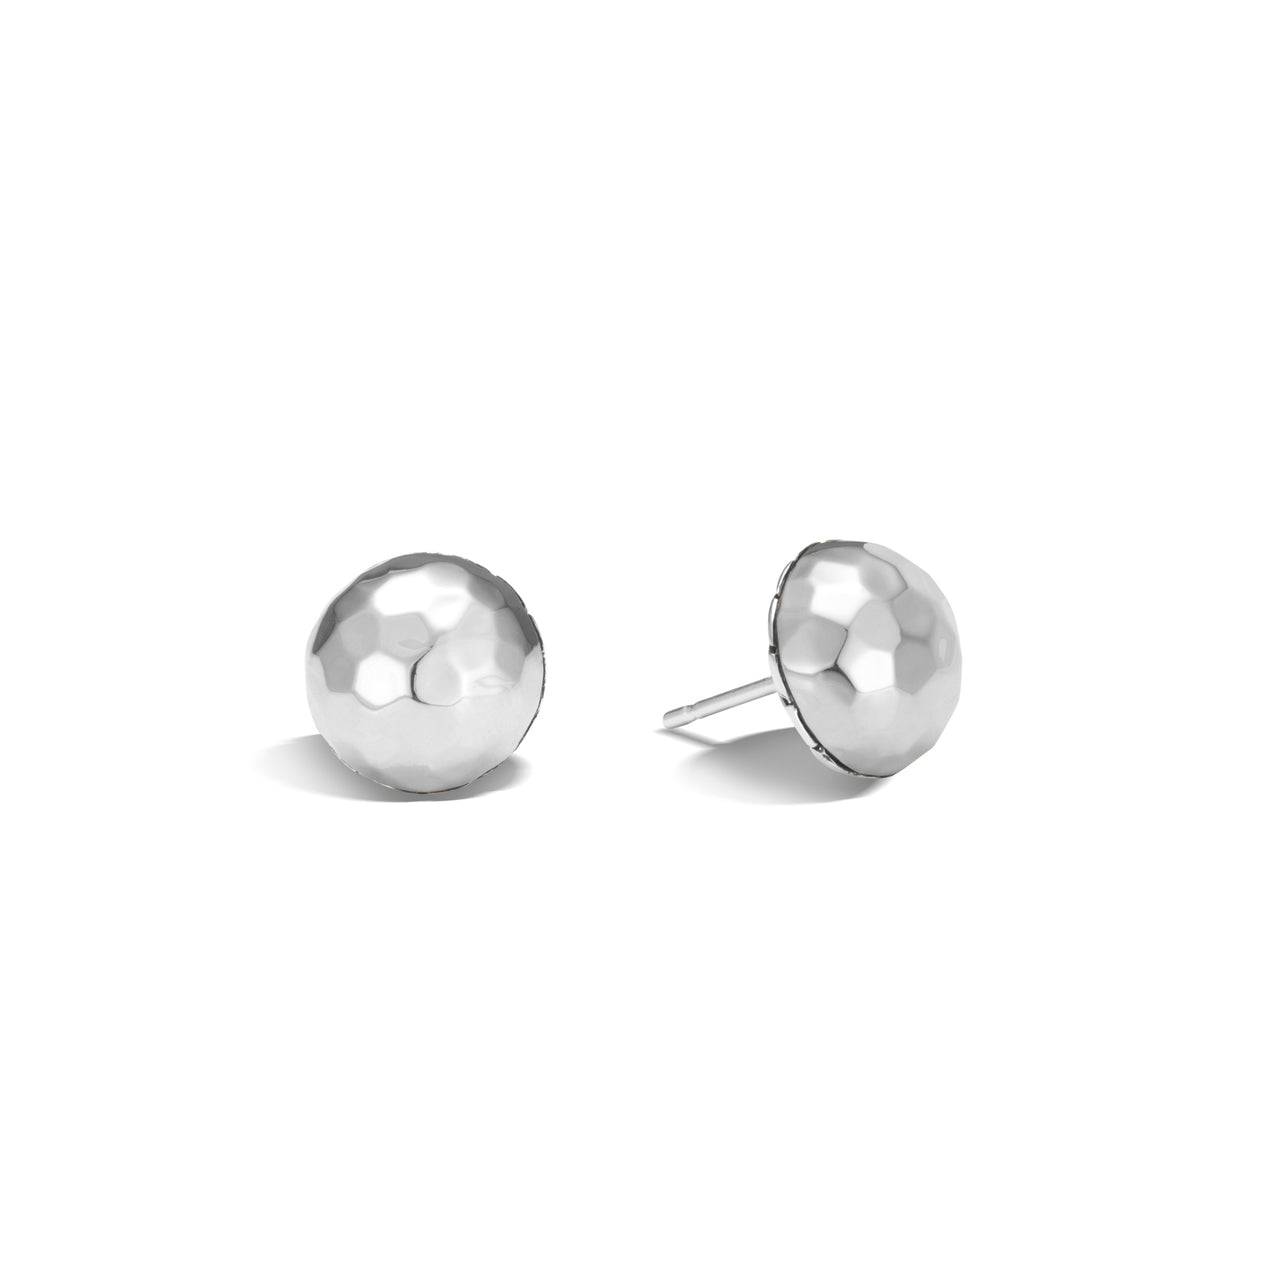 John Hardy Classic Chain Hammered Sterling Silver Stud Earrings